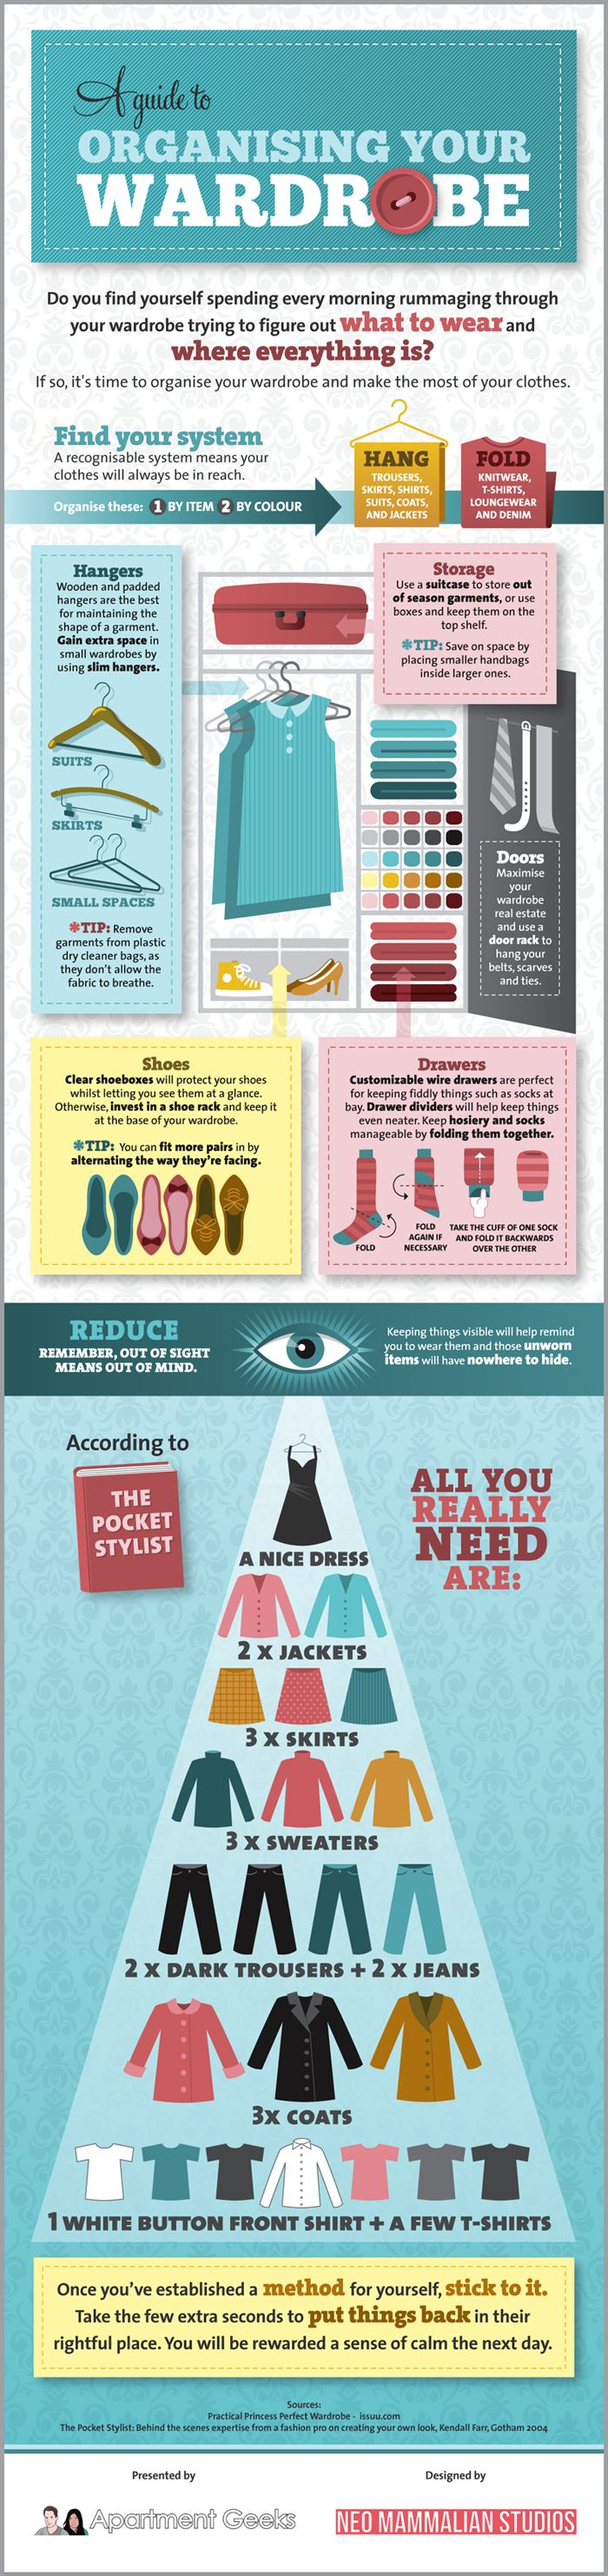 organising your wardrobe infographic